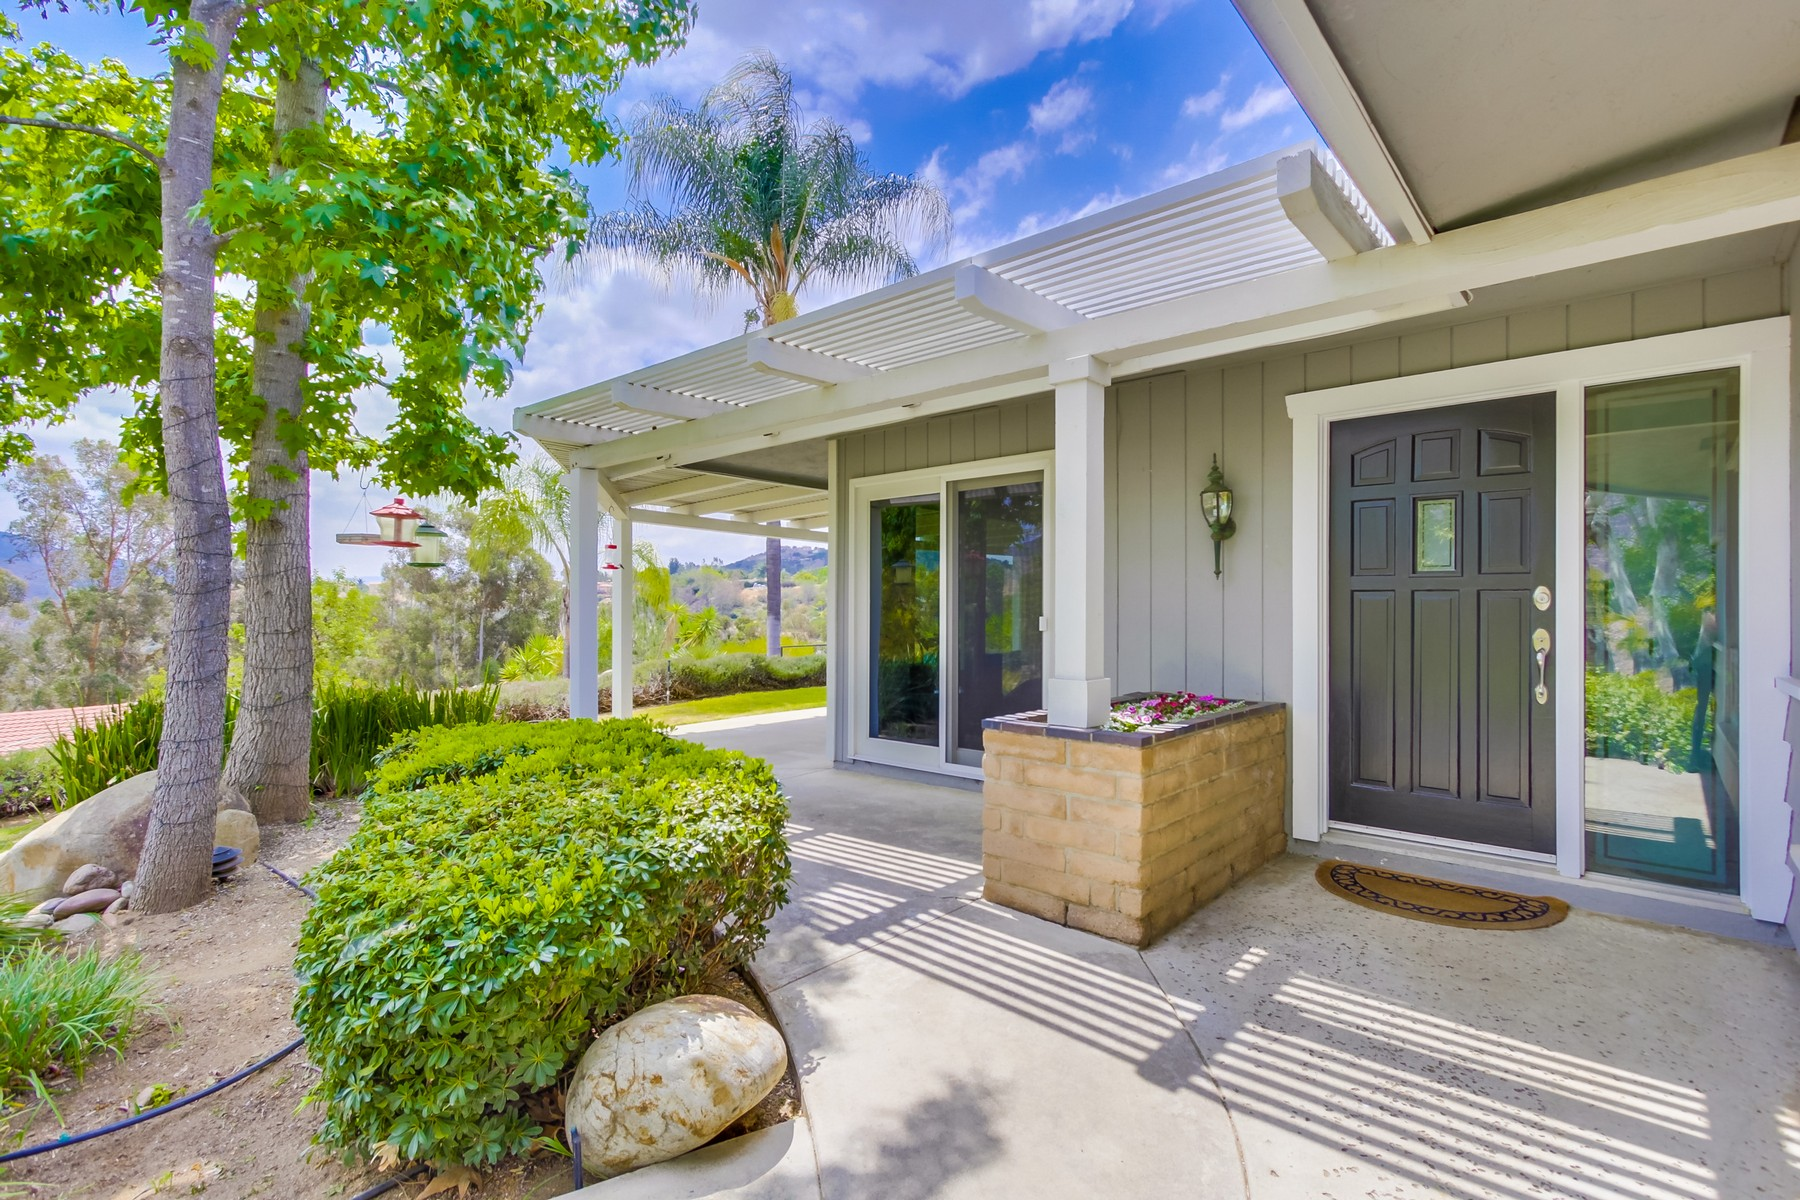 Villa per Vendita alle ore 2503 Singing Vista Way El Cajon, California 92019 Stati Uniti